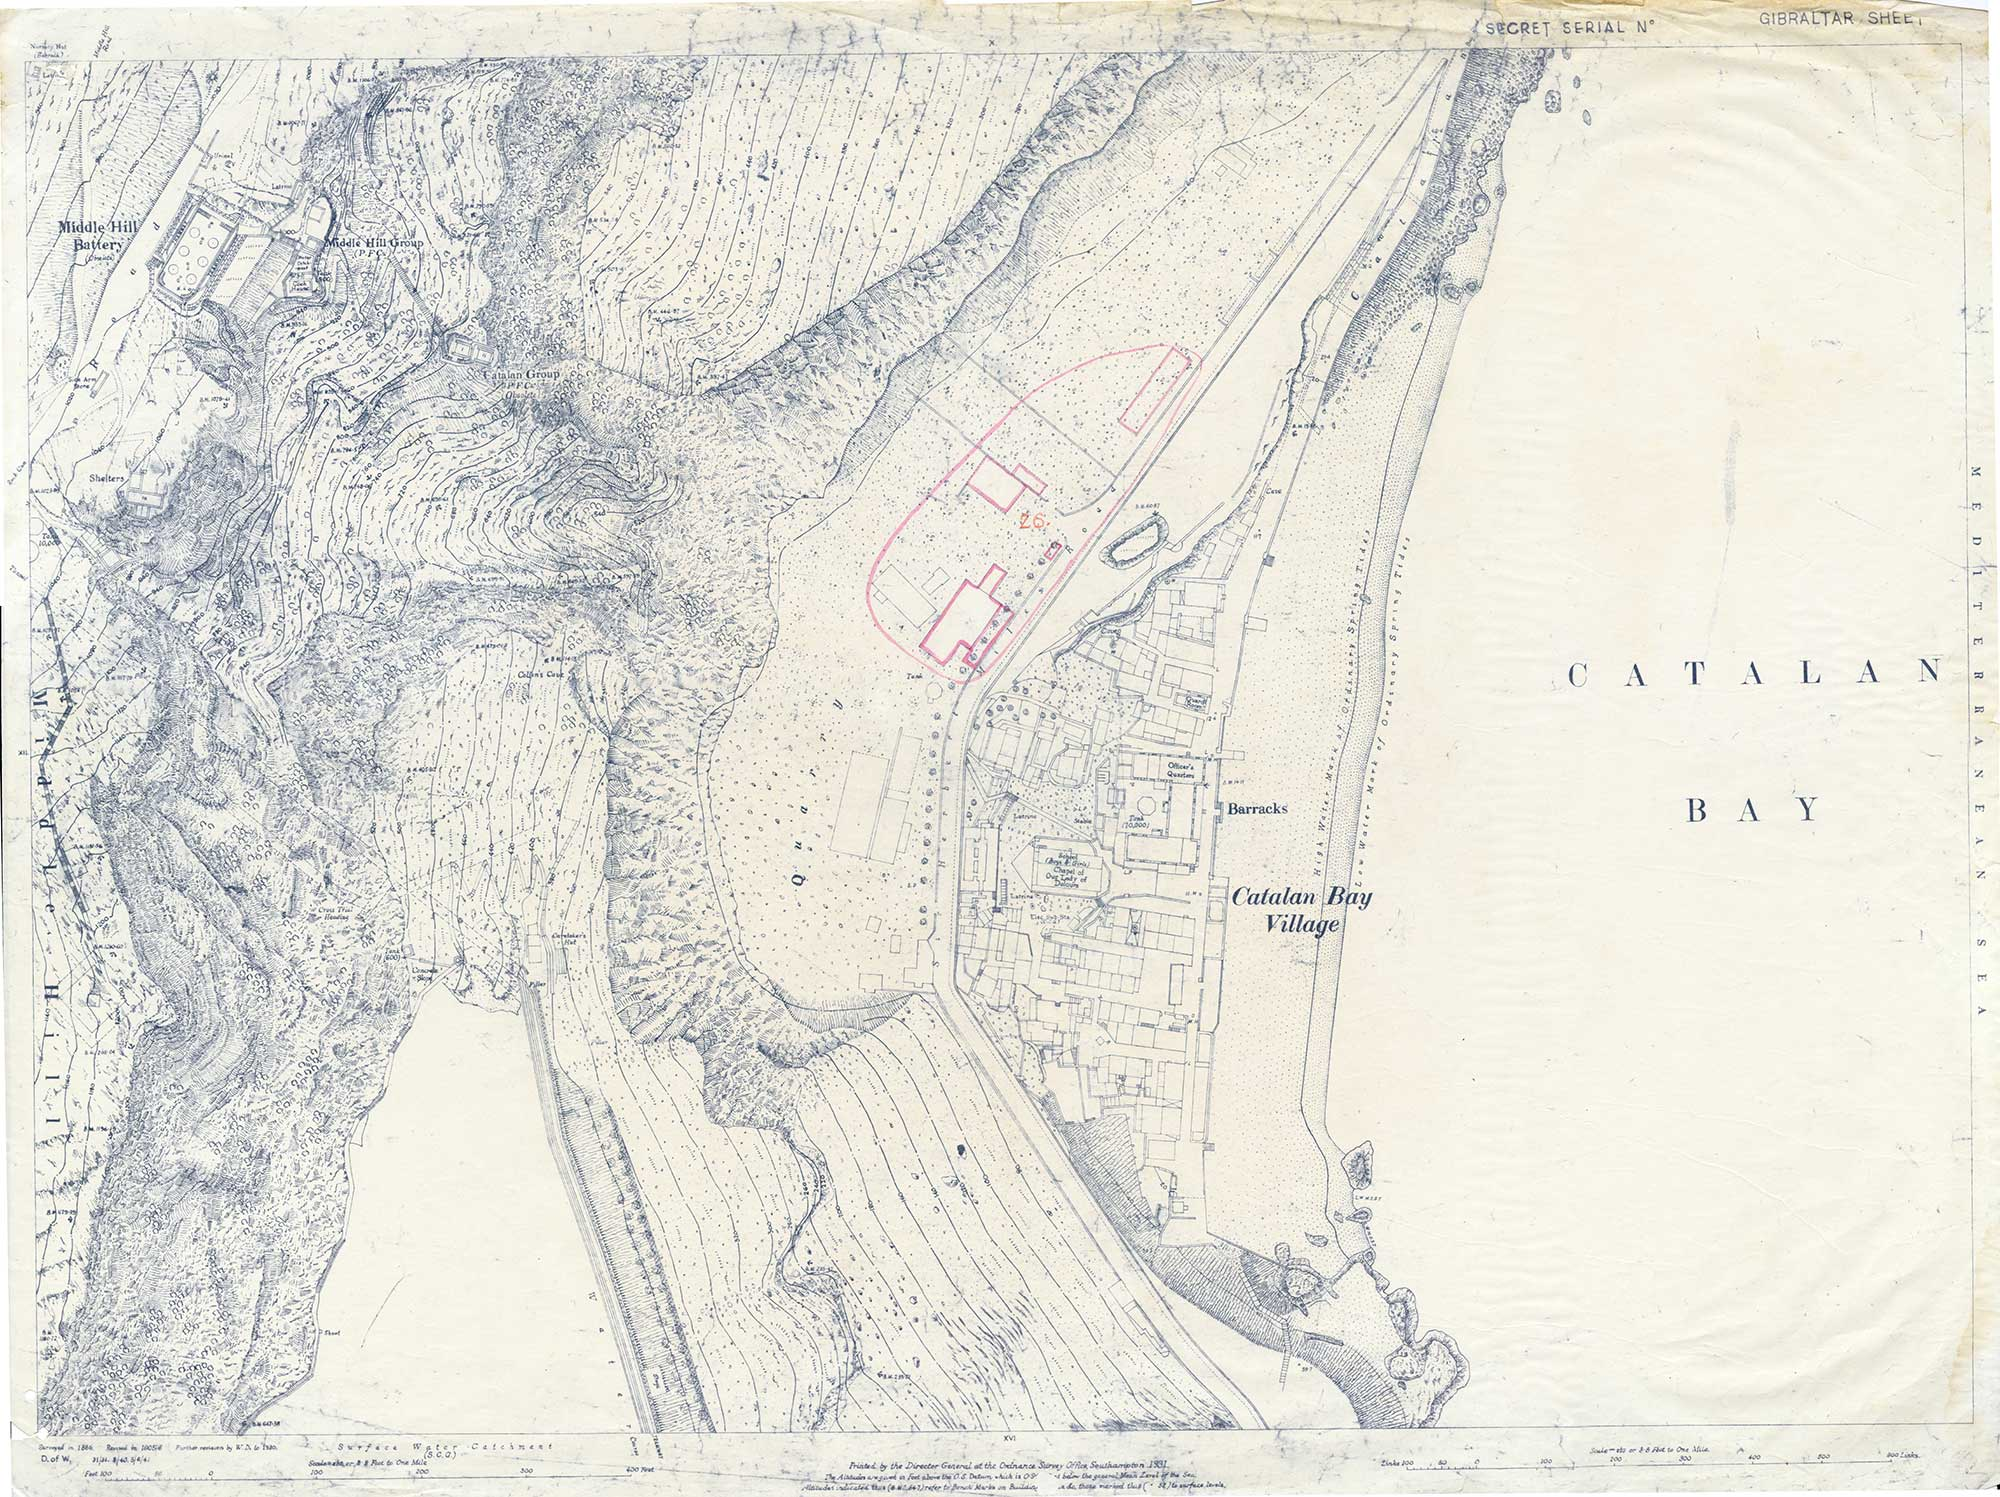 Map-31-Sheet-13-Middle-Hill-Station-to-Catalan-Bay-1931